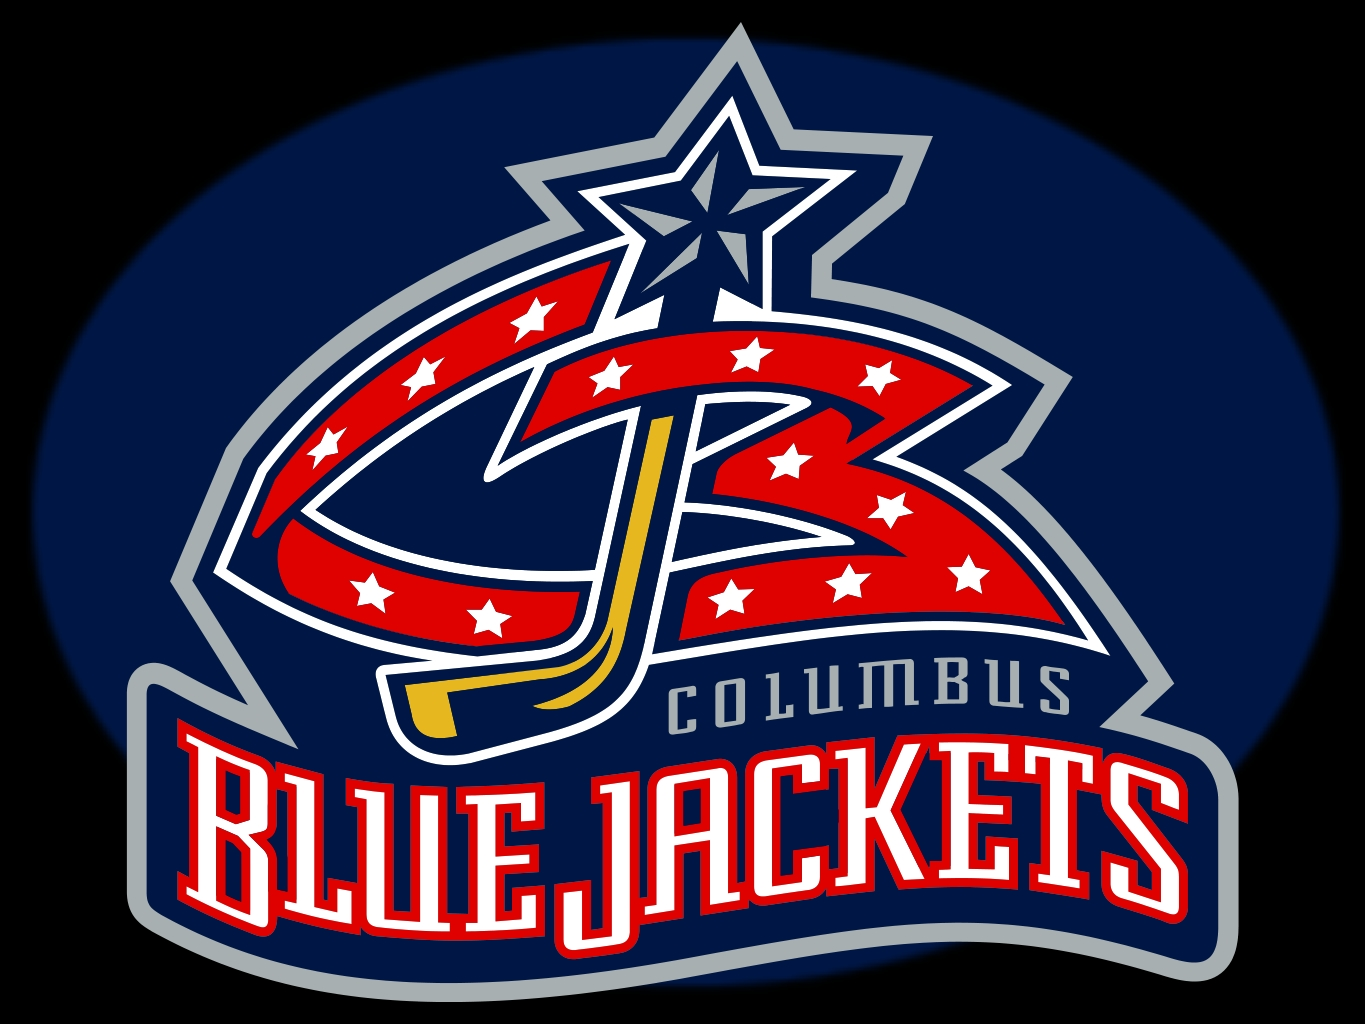 BLUE JACKETS BOOST REGIONAL SPORTS NETWORKS – Mitch Melnick